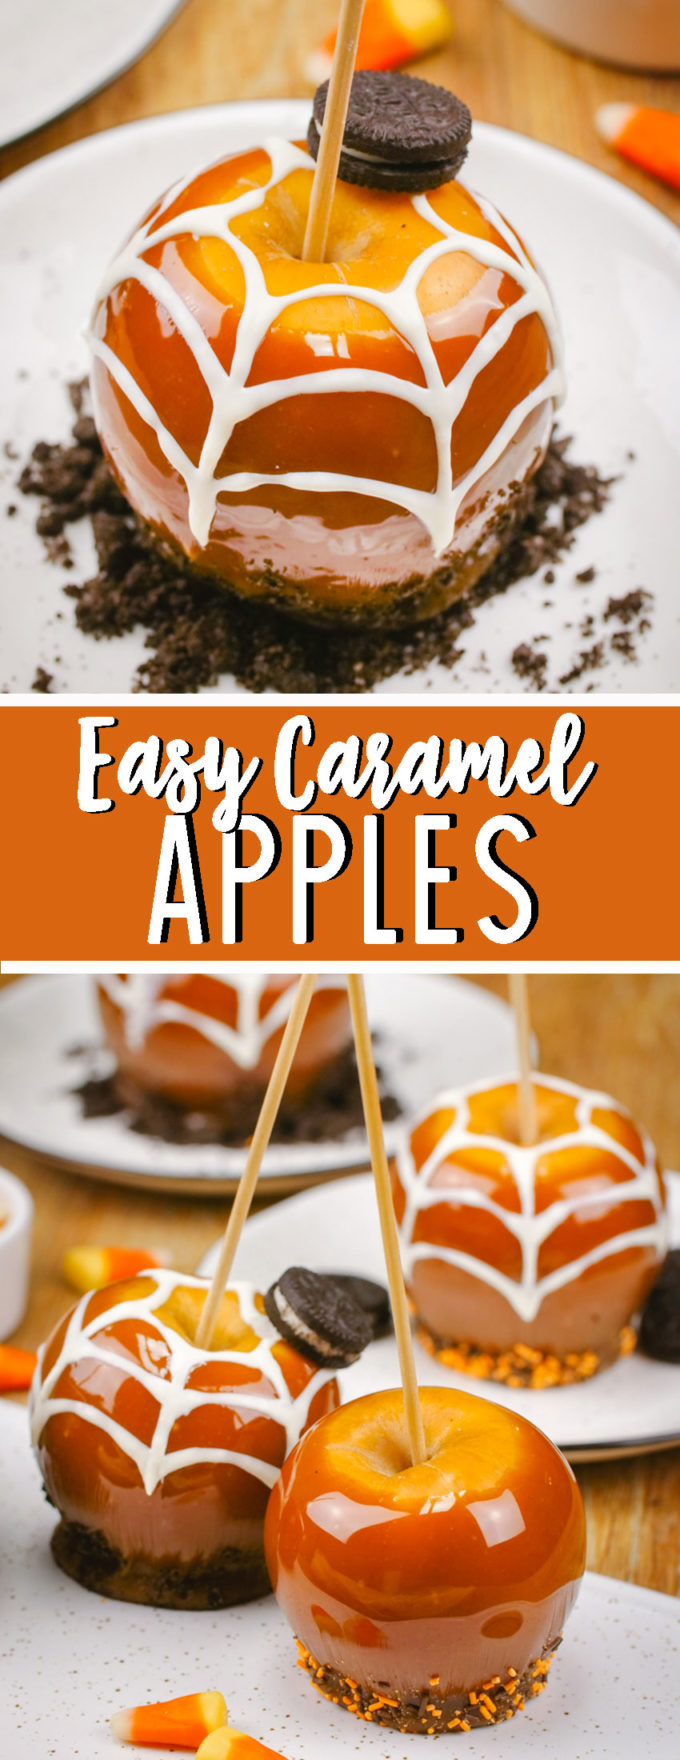 Making easy caramel apples, decorated for Halloween with spider webs